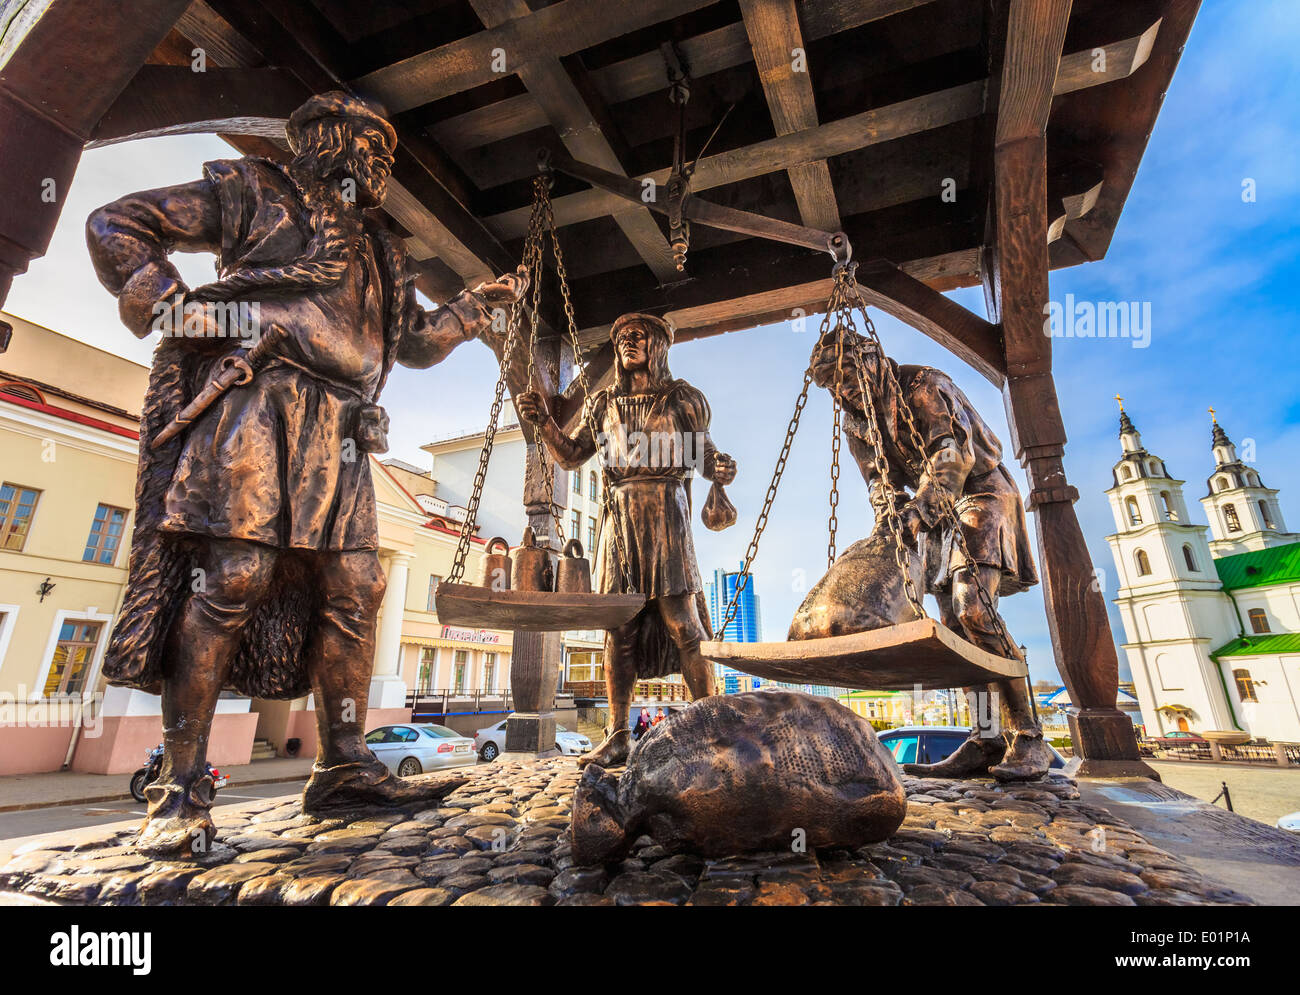 Trade merchants weighing of the wares and payment - bronze statue in old part town on April 6, 2014 In Minsk, Belarus - Stock Image